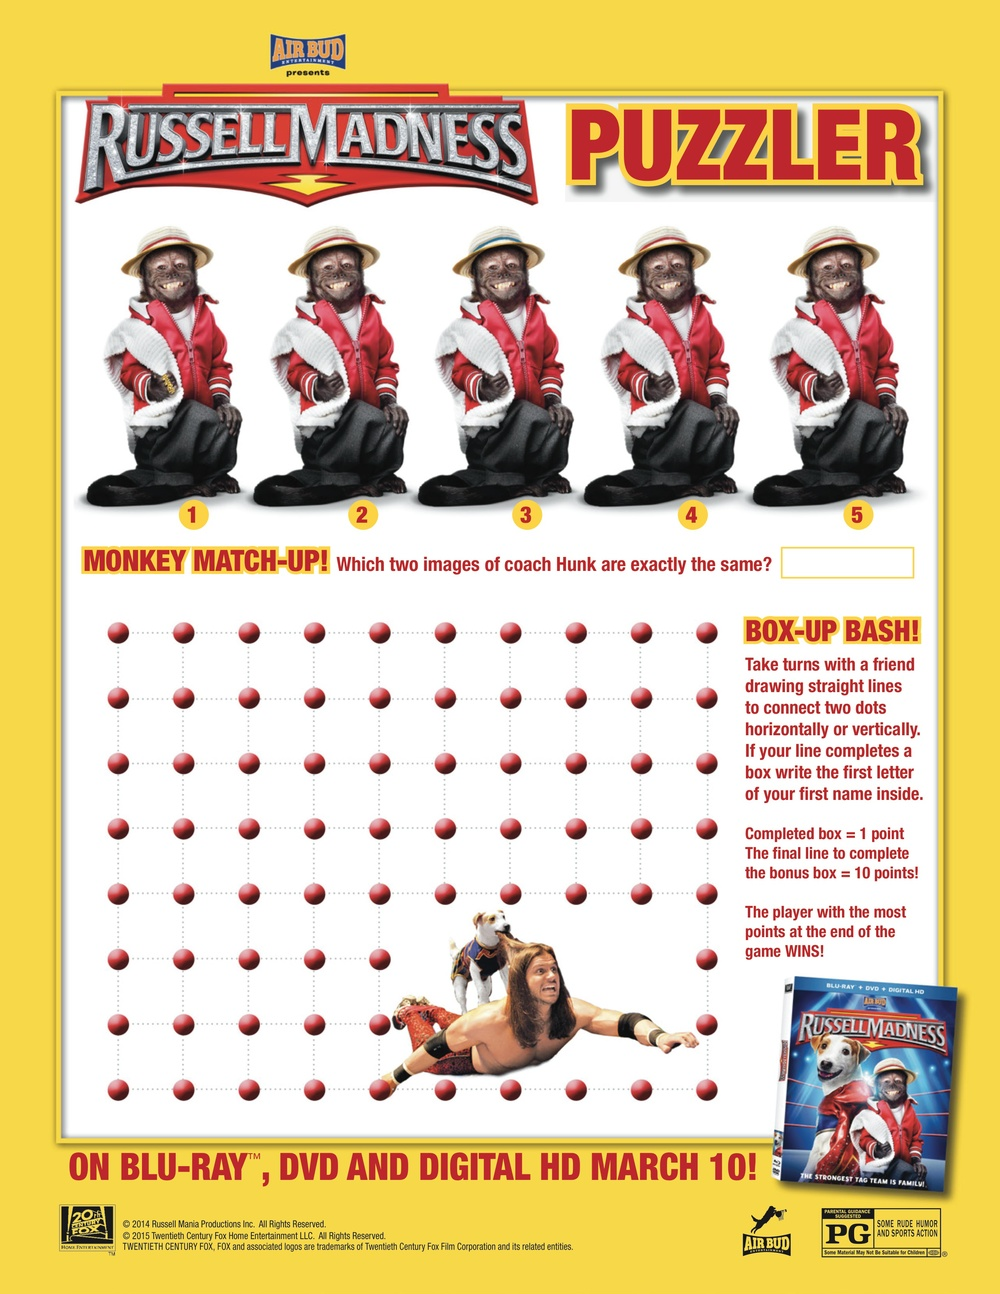 Russell Madness-puzzler.jpg